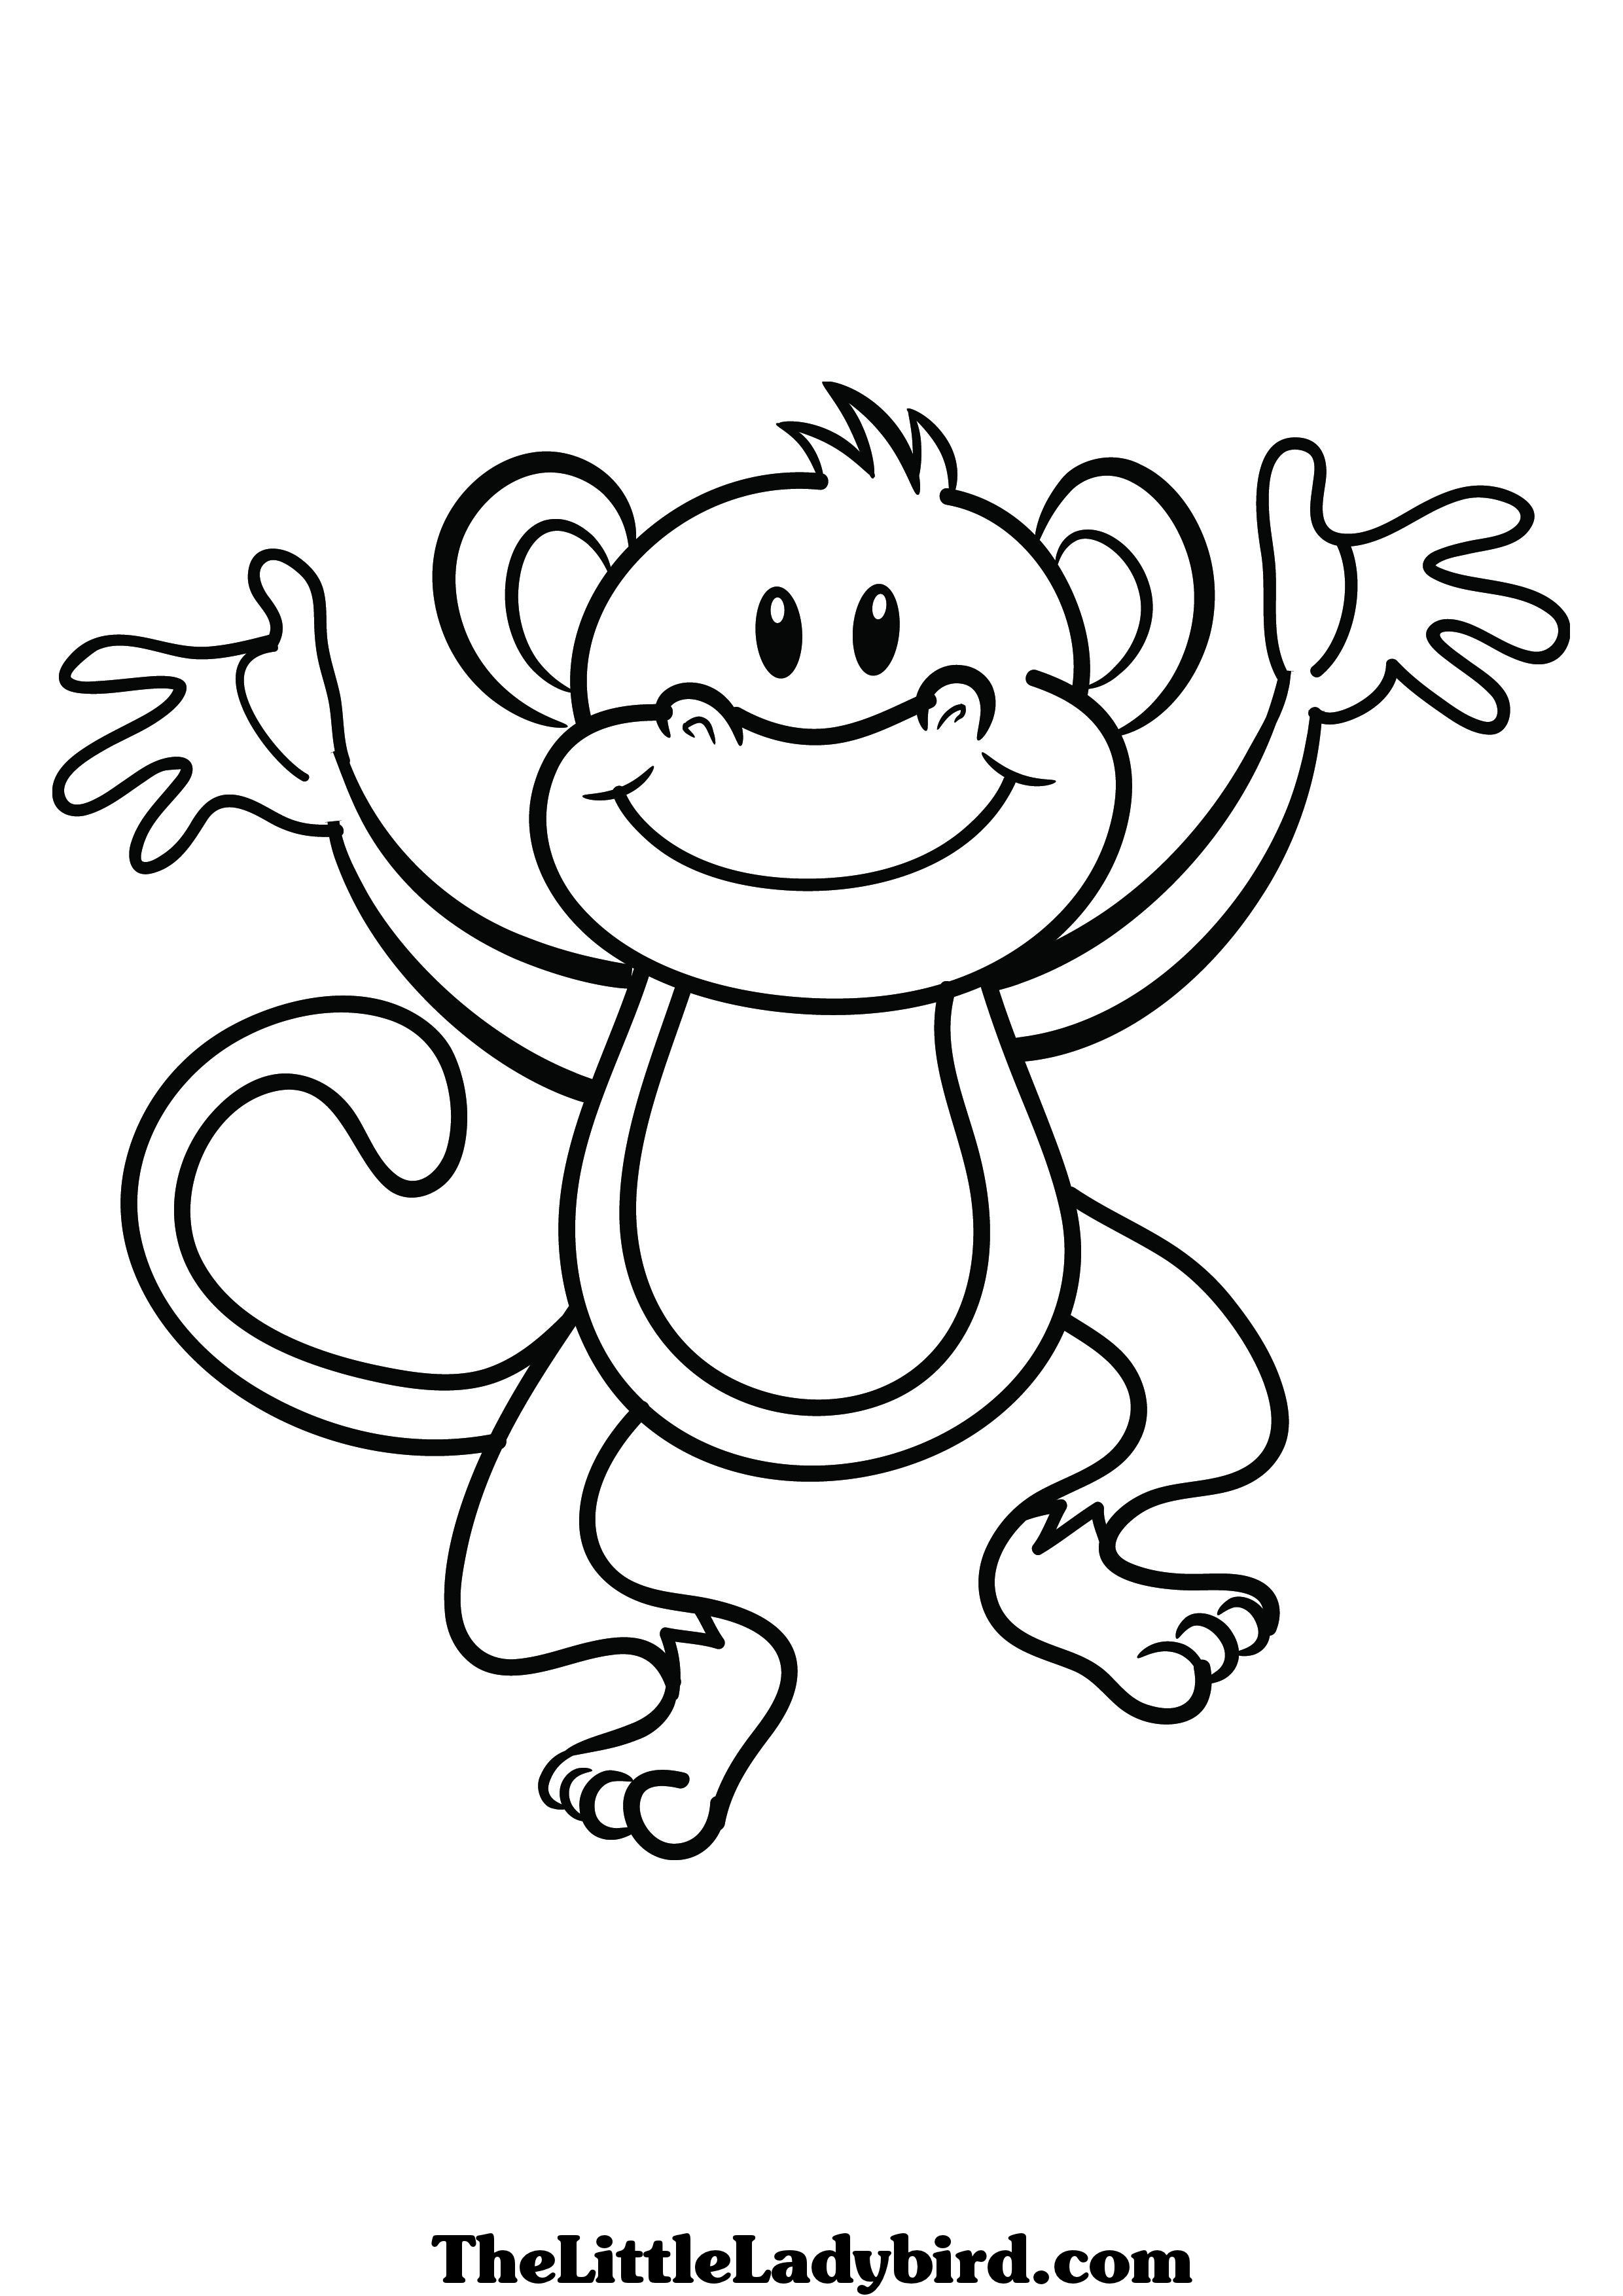 2480x3508 Baby Monkey Coloring Pages To Download And Print For Free